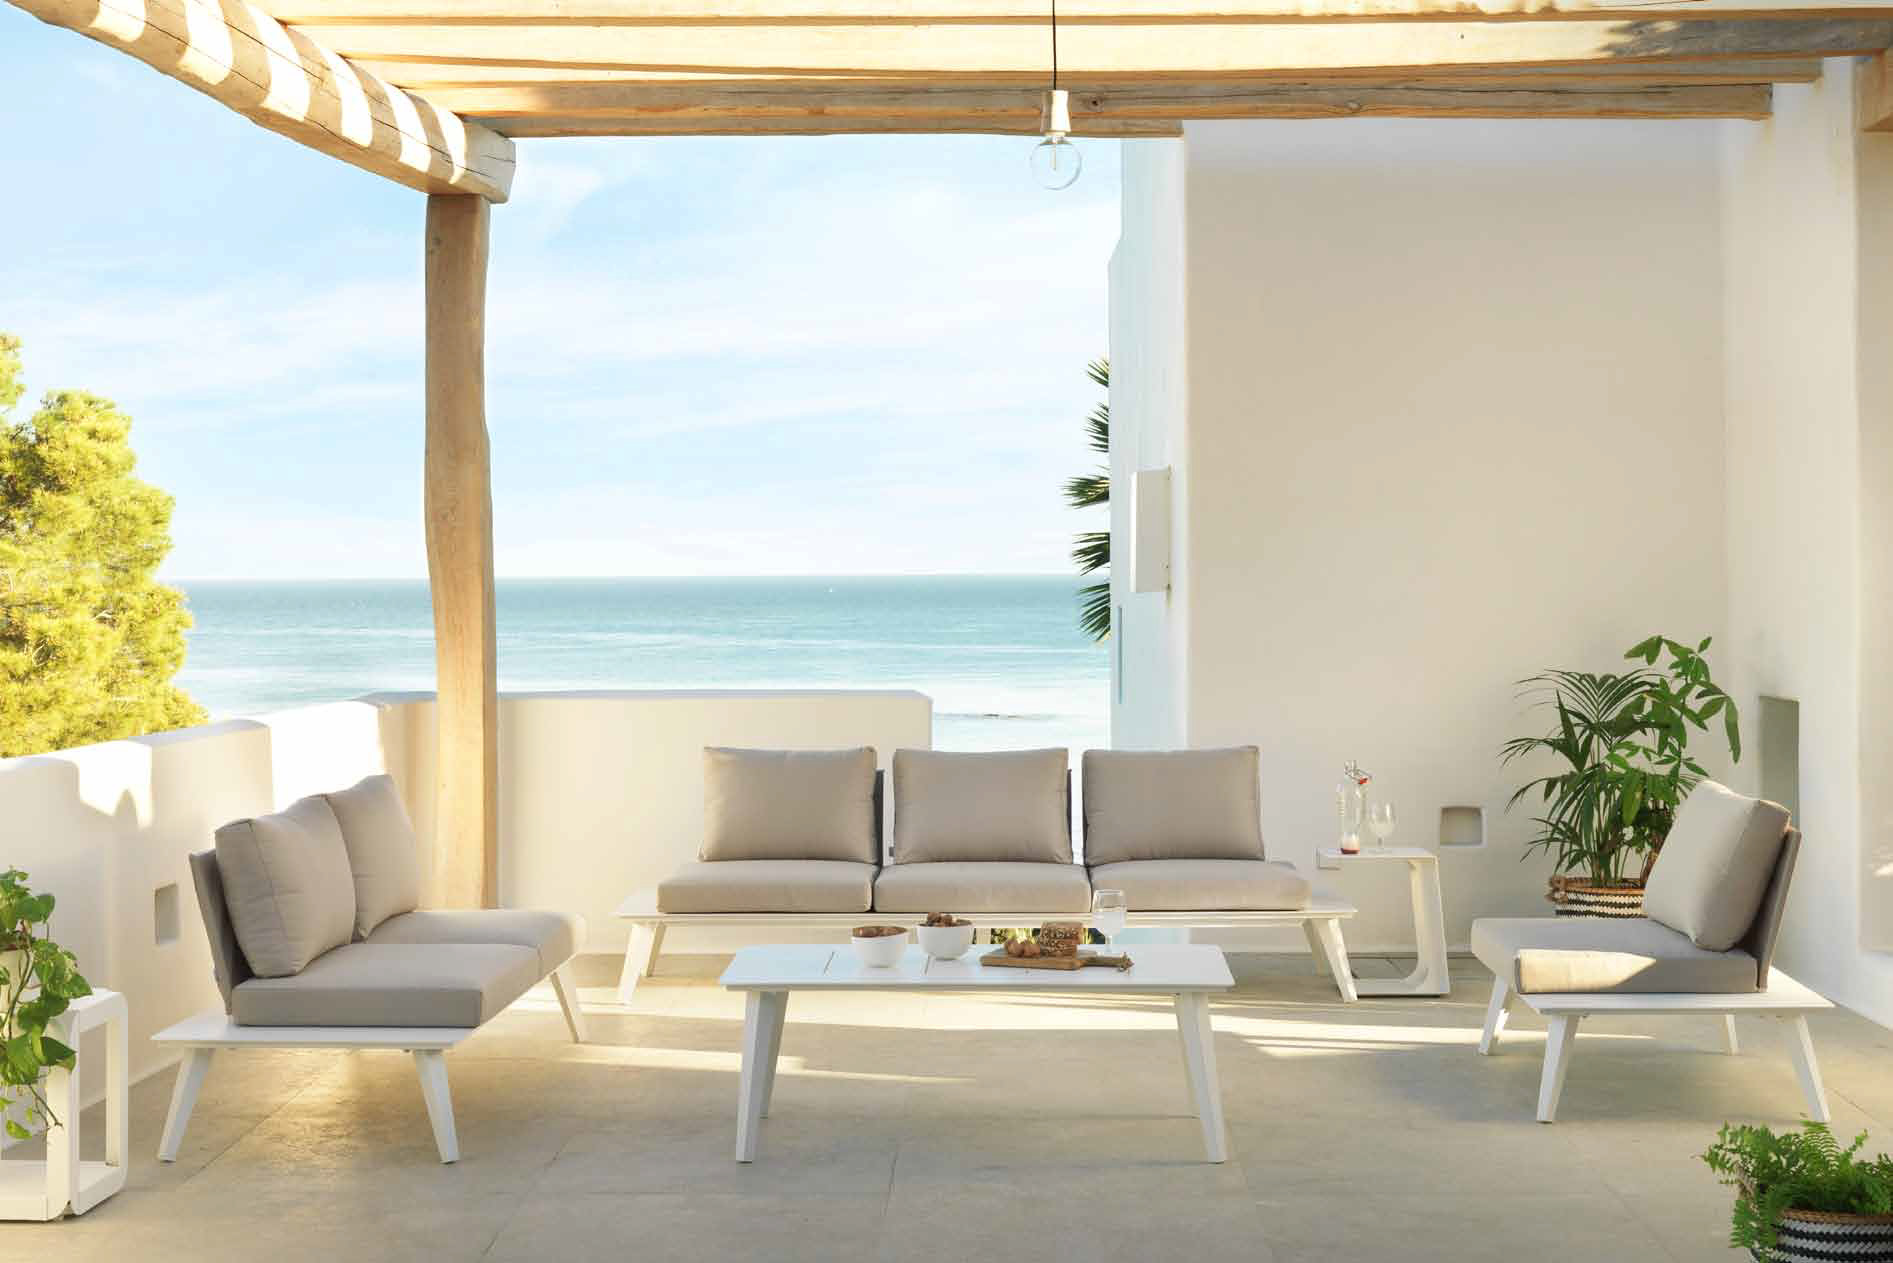 jardin-y-terraza-Out-2018-muebles-paco-caballero-1269-5cb1bfd25cac3